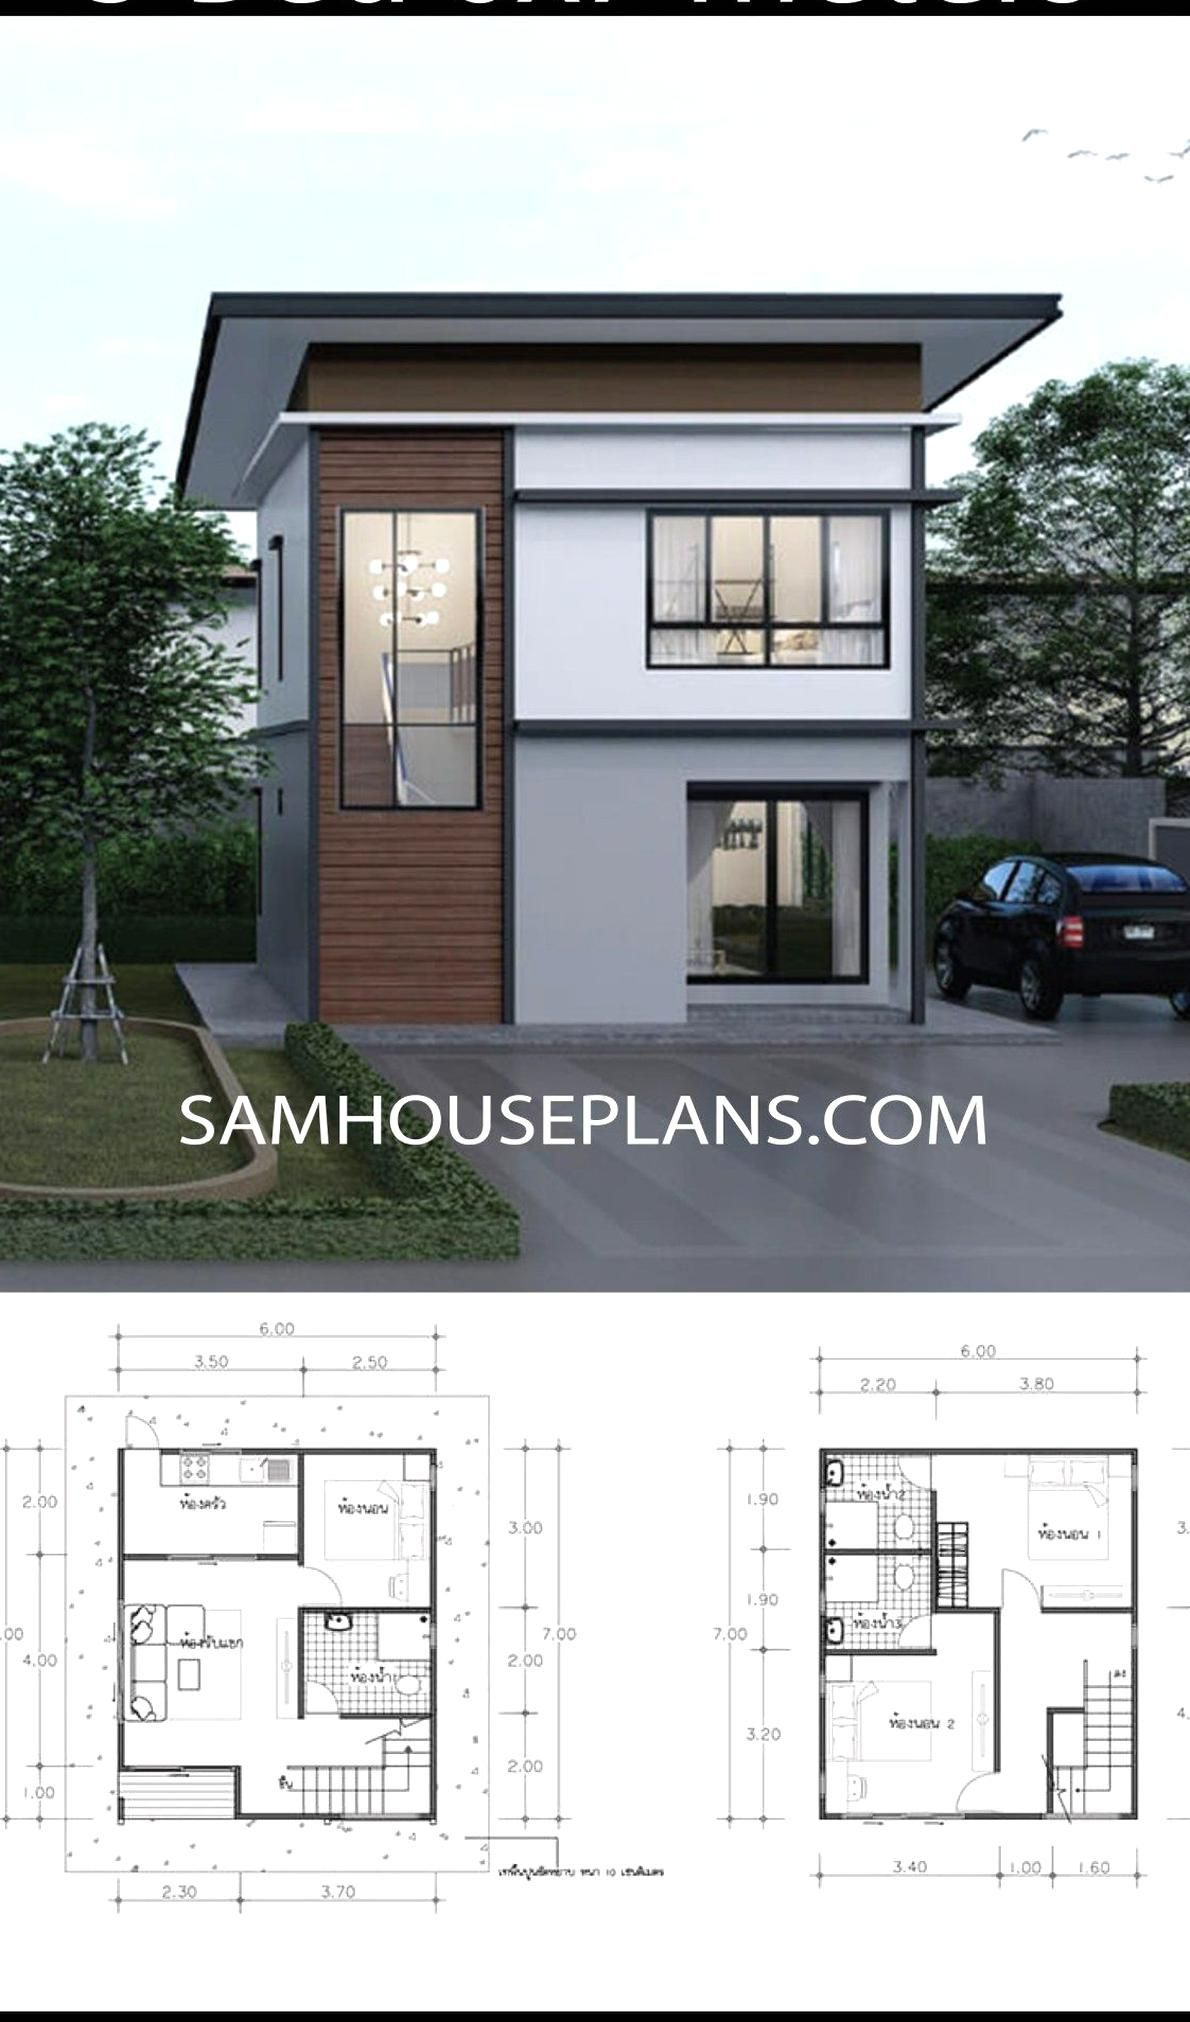 House Plans Idea 6x7 With 3 Bedrooms Sam House Plans Small Beach House Plans Small Modern House Plans Small Beach Houses